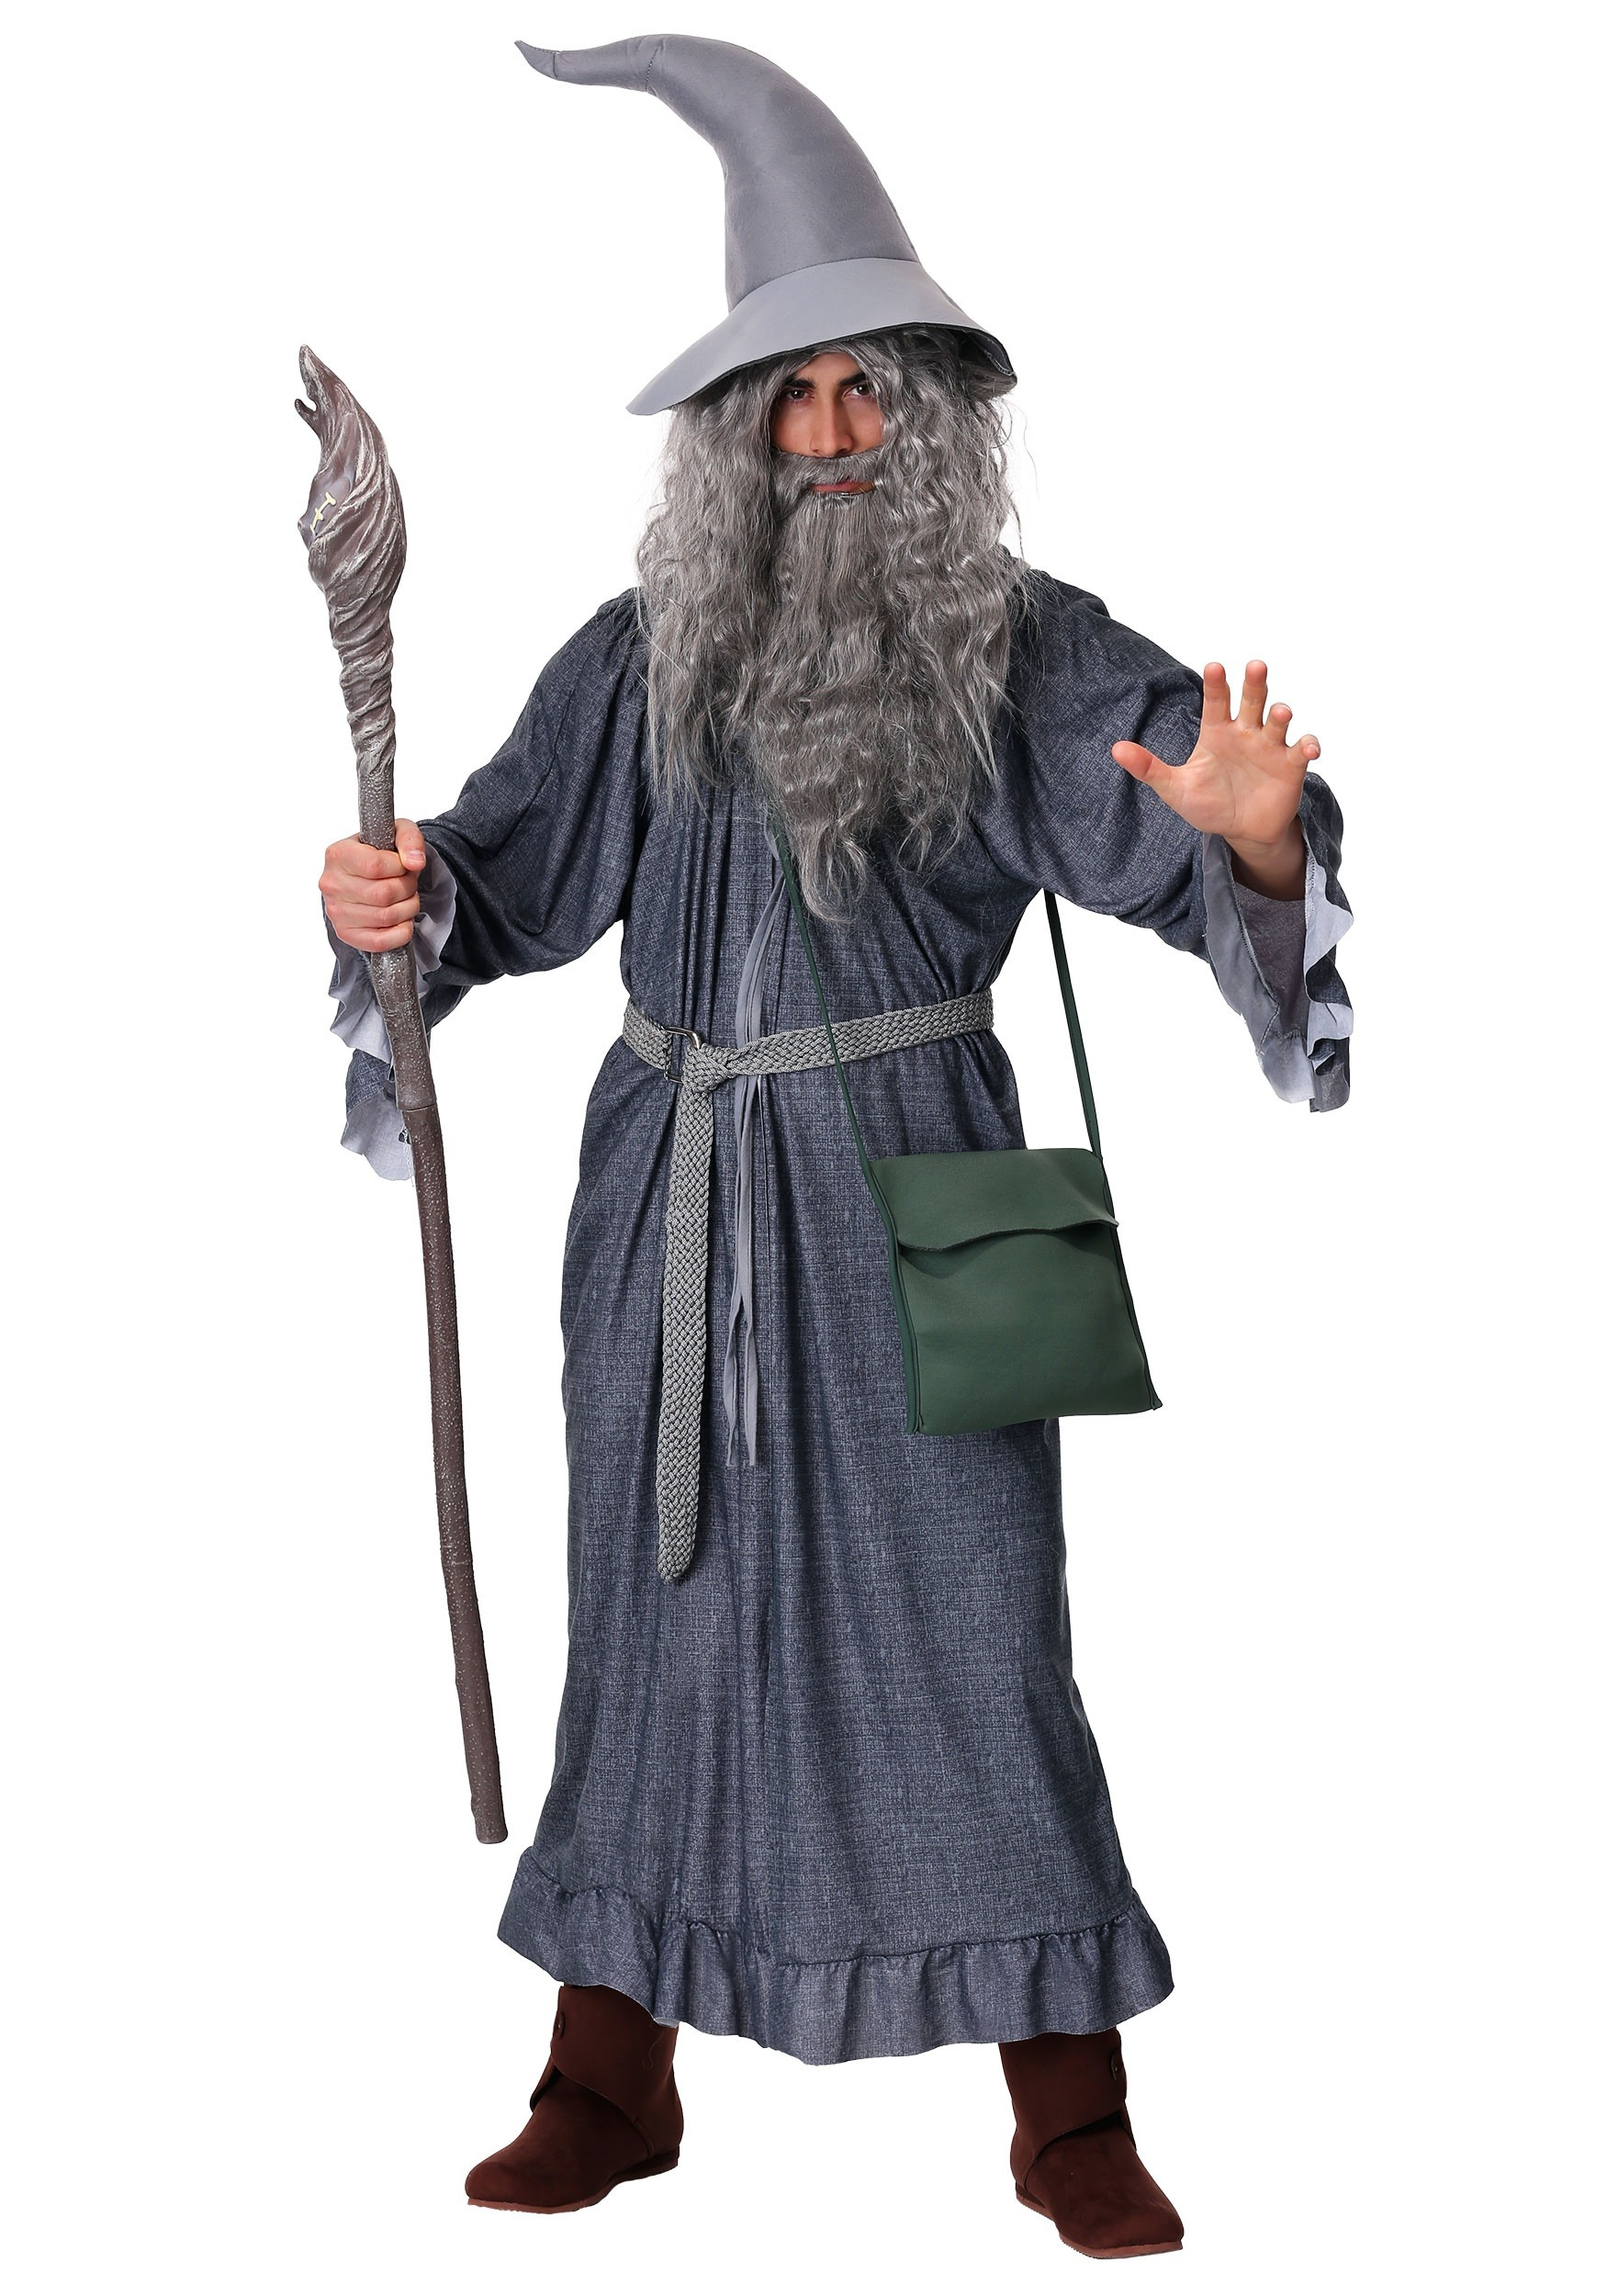 Adult gandalf costume adult gandalf costume1 solutioingenieria Images